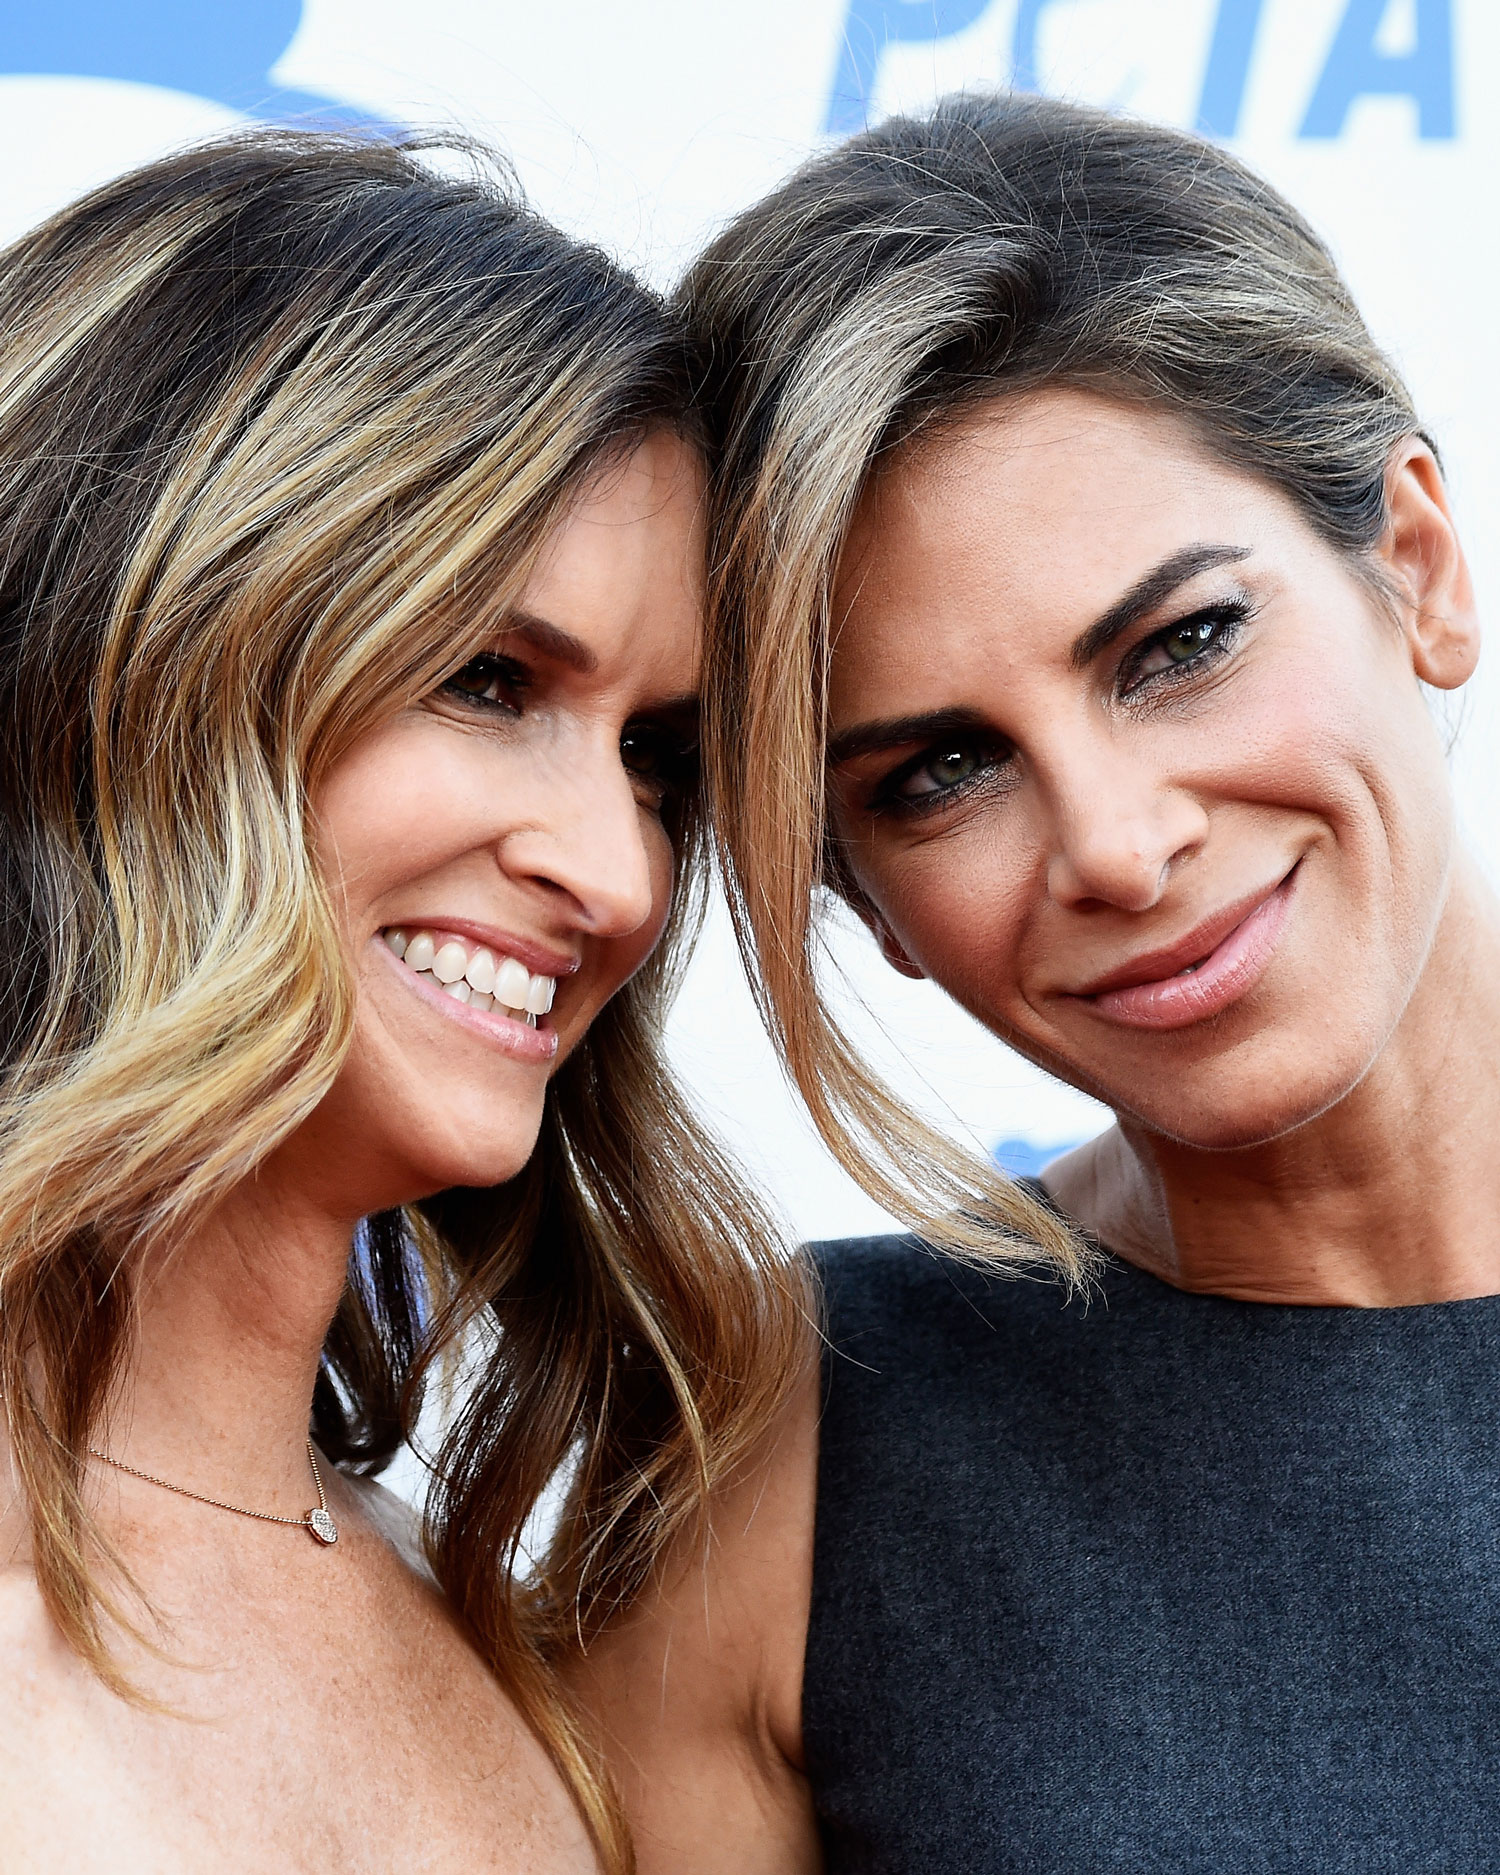 Jillian Michaels and Heidi Rhoades